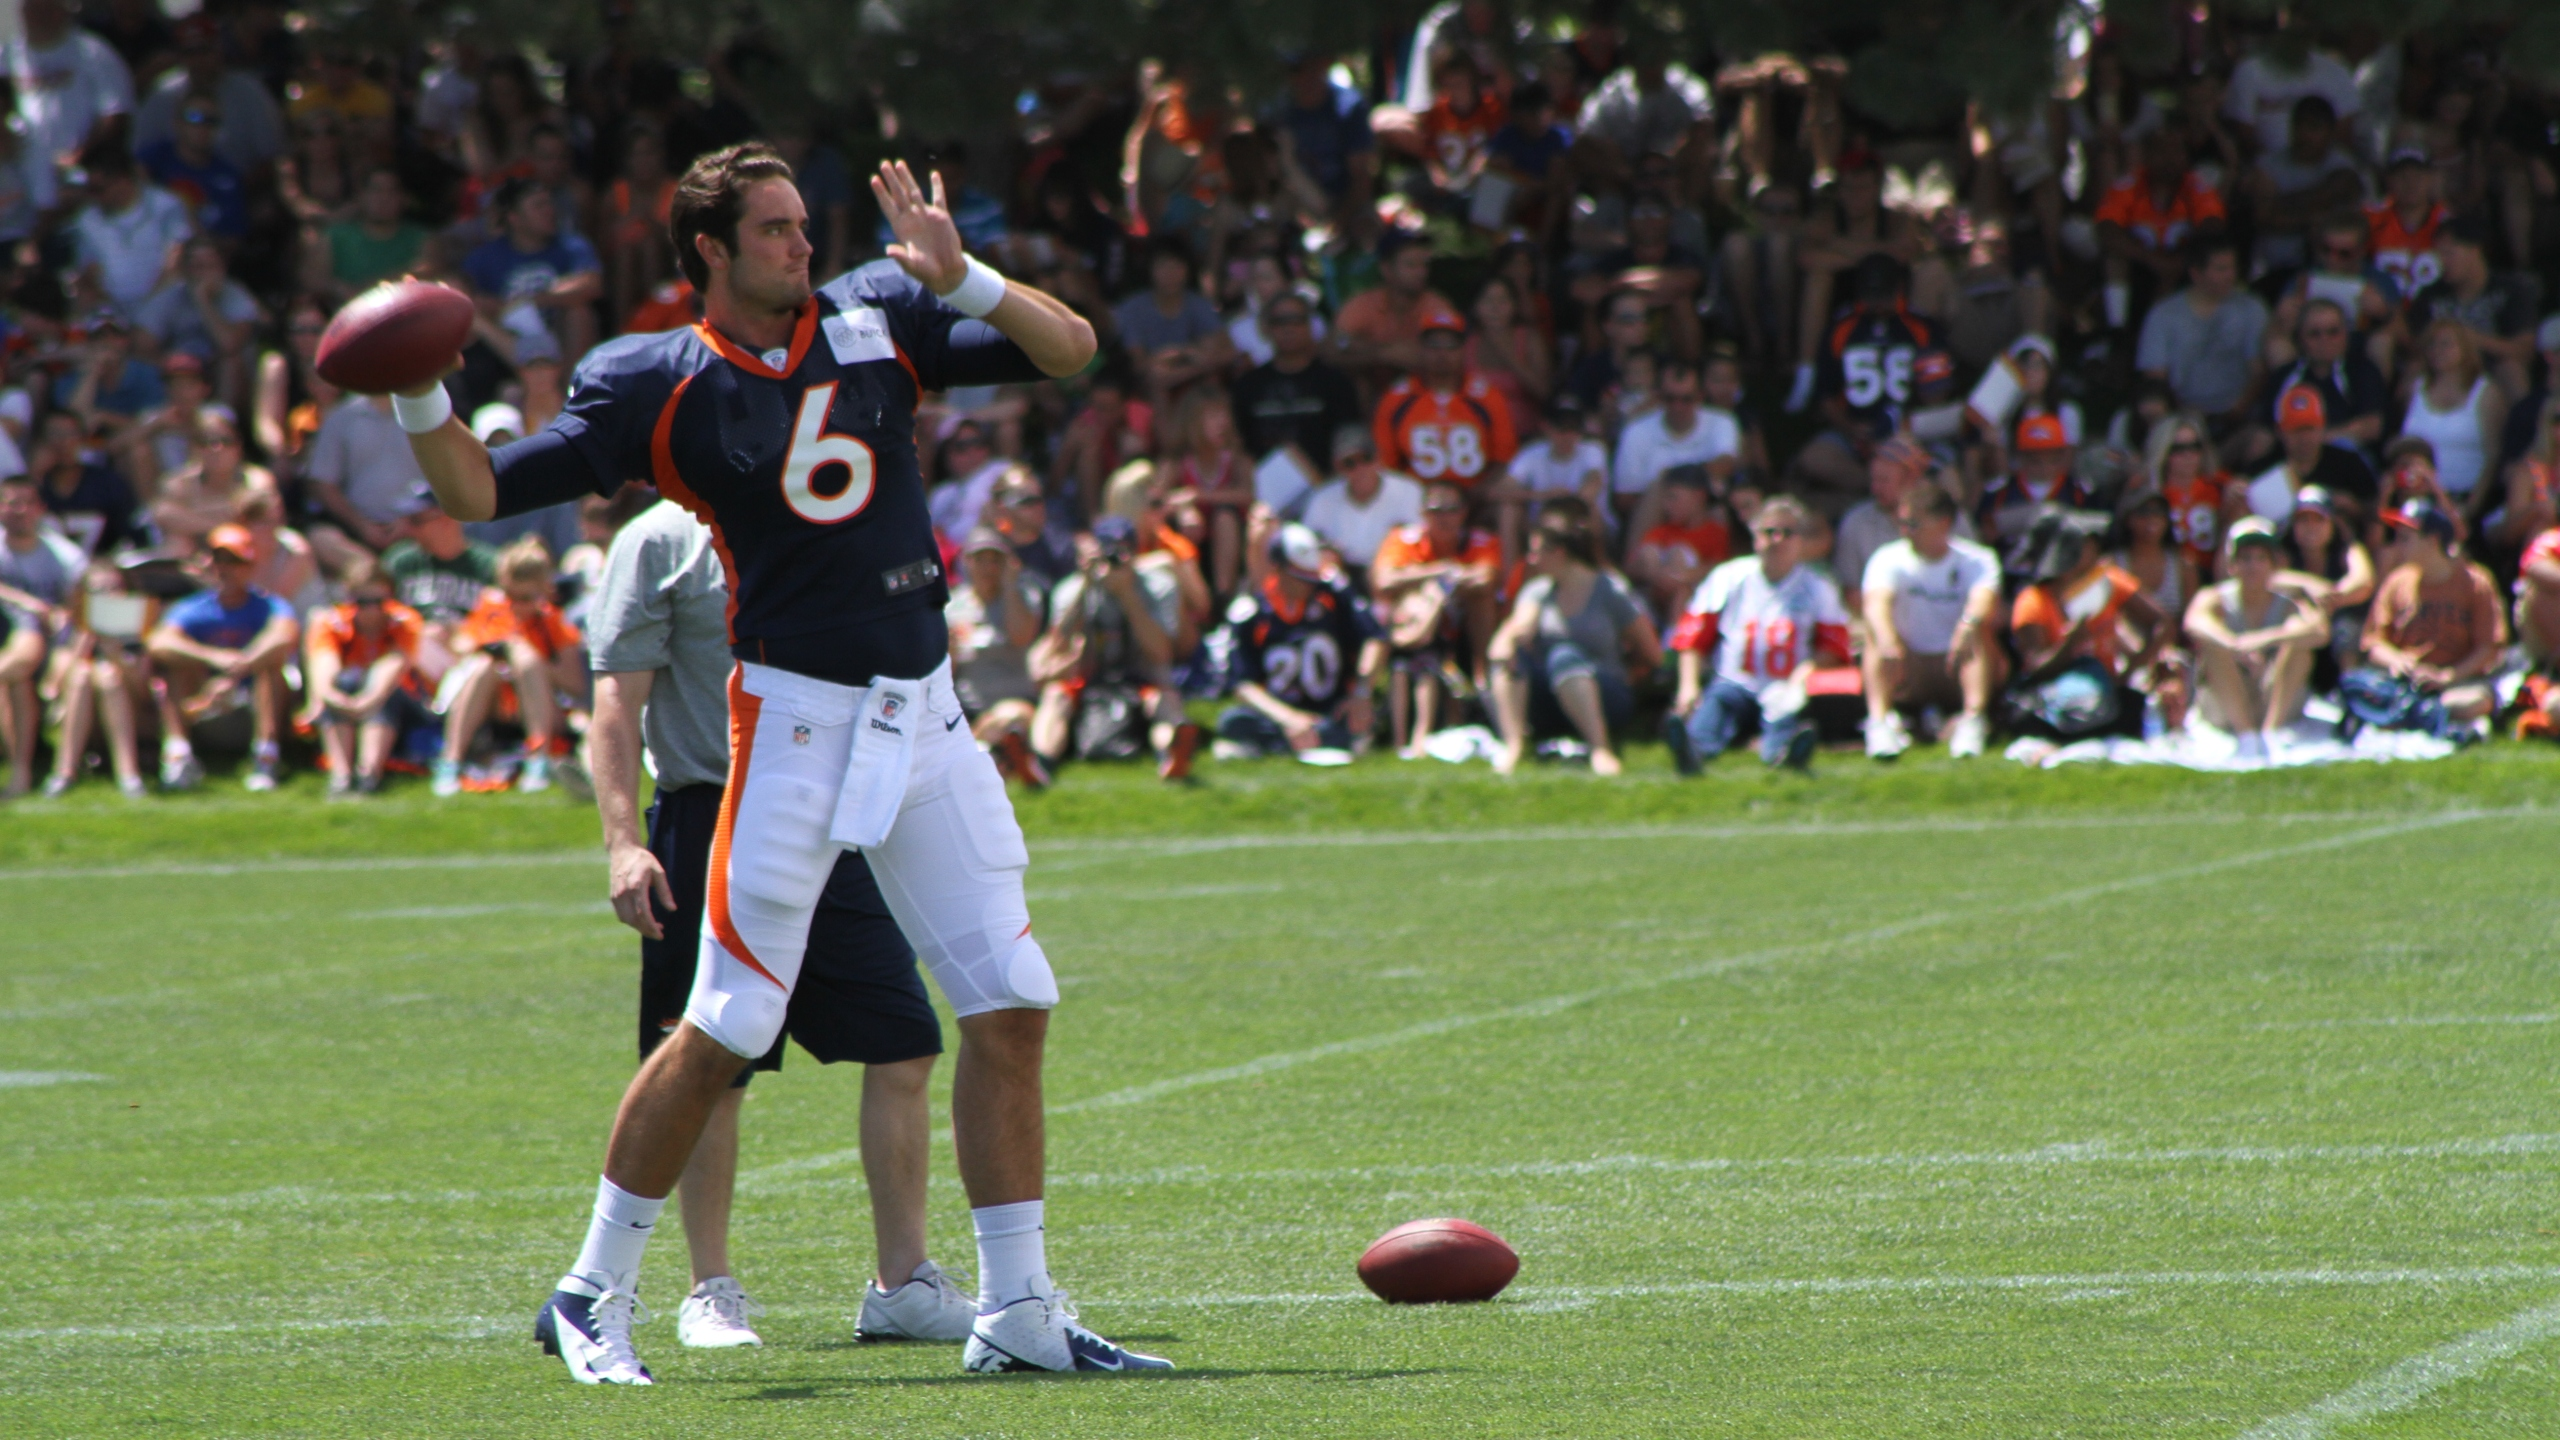 Brock Osweiler throws during Day 5 of camp, July 30, 2012.